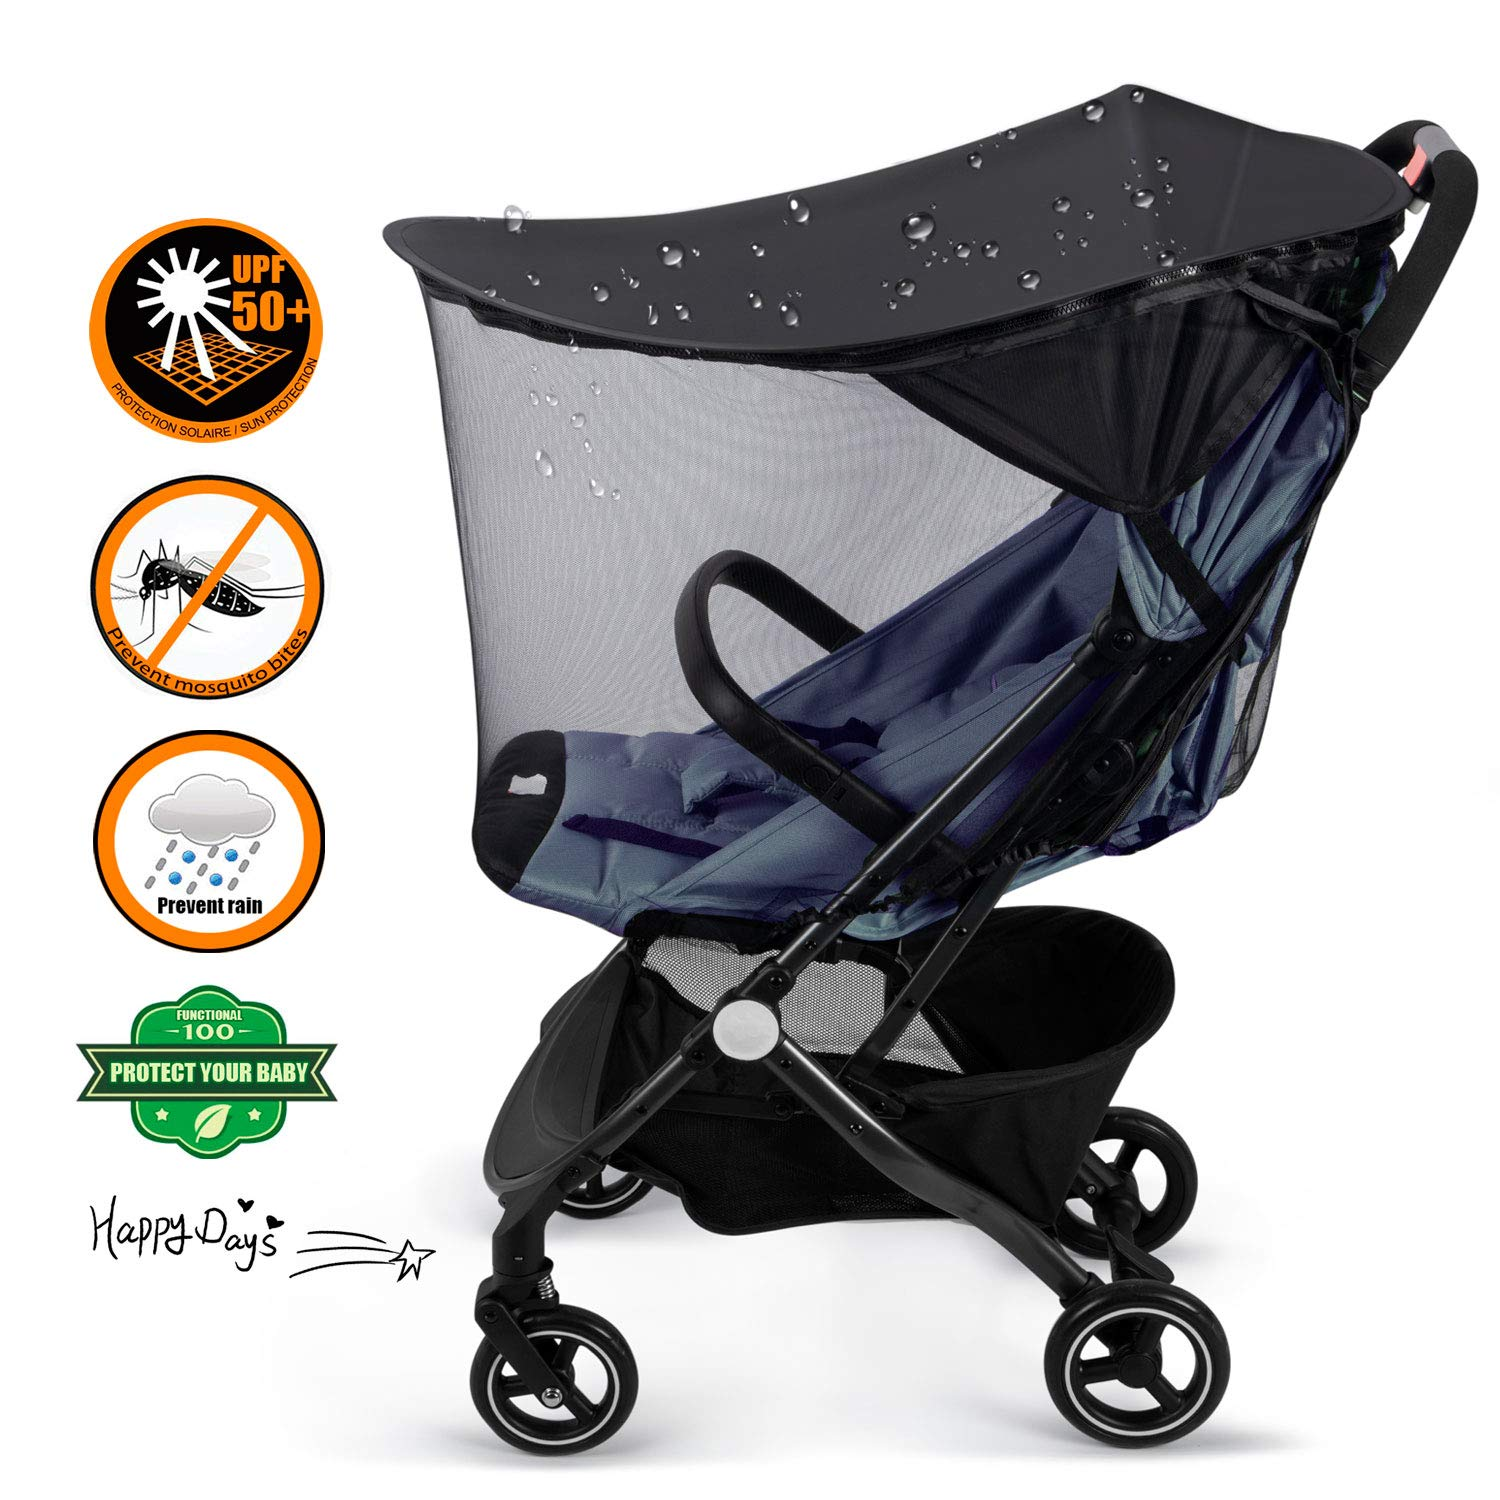 YLYYCC Baby Stroller Widen Sun Shade Awning/Oval Canopy + Bed net Style/Anti- UV Resistance/Rain proofing by YLYYCC